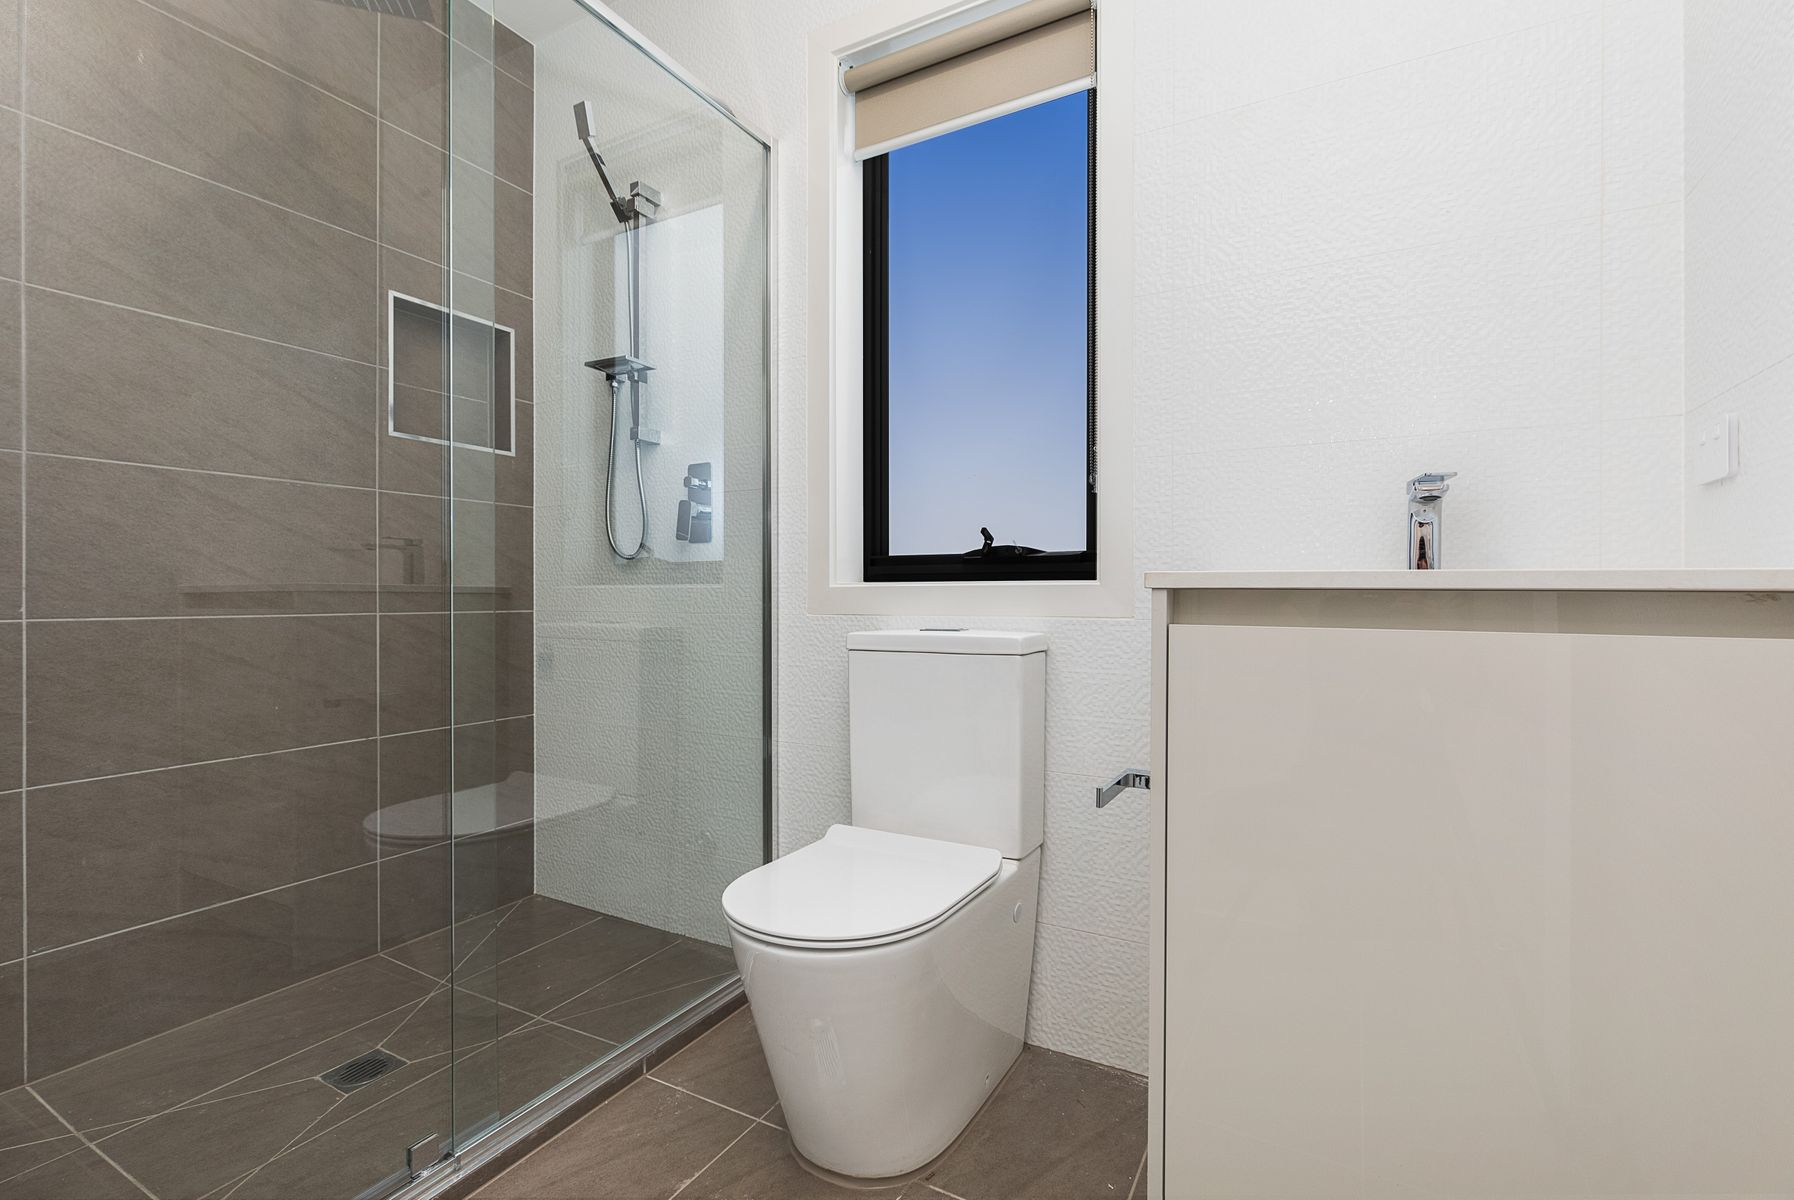 4/71 Powell Drive, Hoppers Crossing, VIC 3029